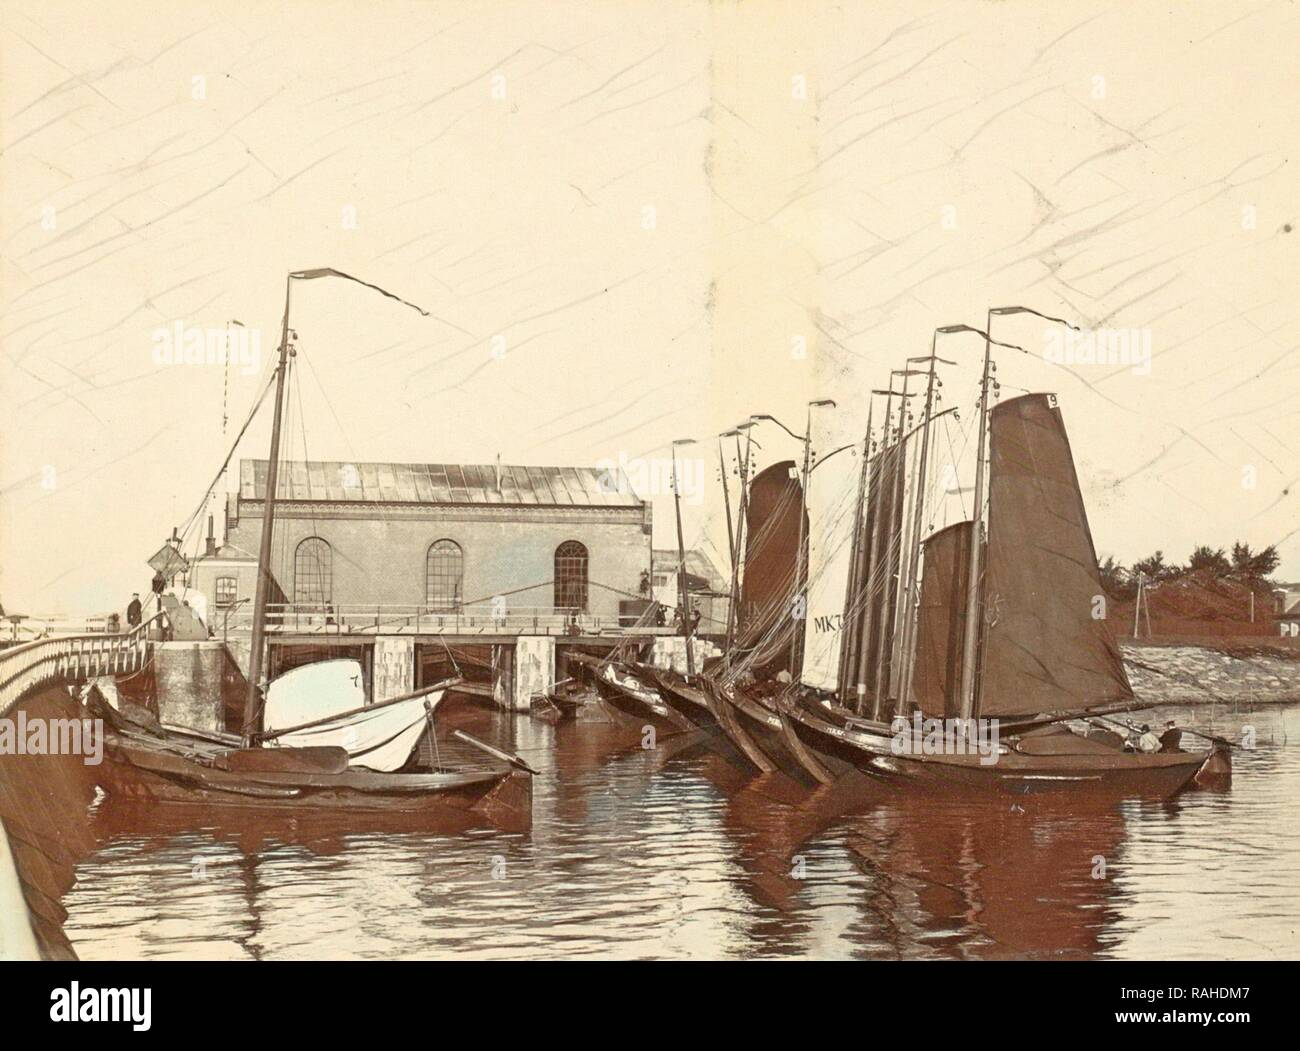 Moored sailing vessels in the Oranjesluizen in Amsterdam, The Netherlands, Anonymous, c. 1900 - c. 1910. Reimagined - Stock Image